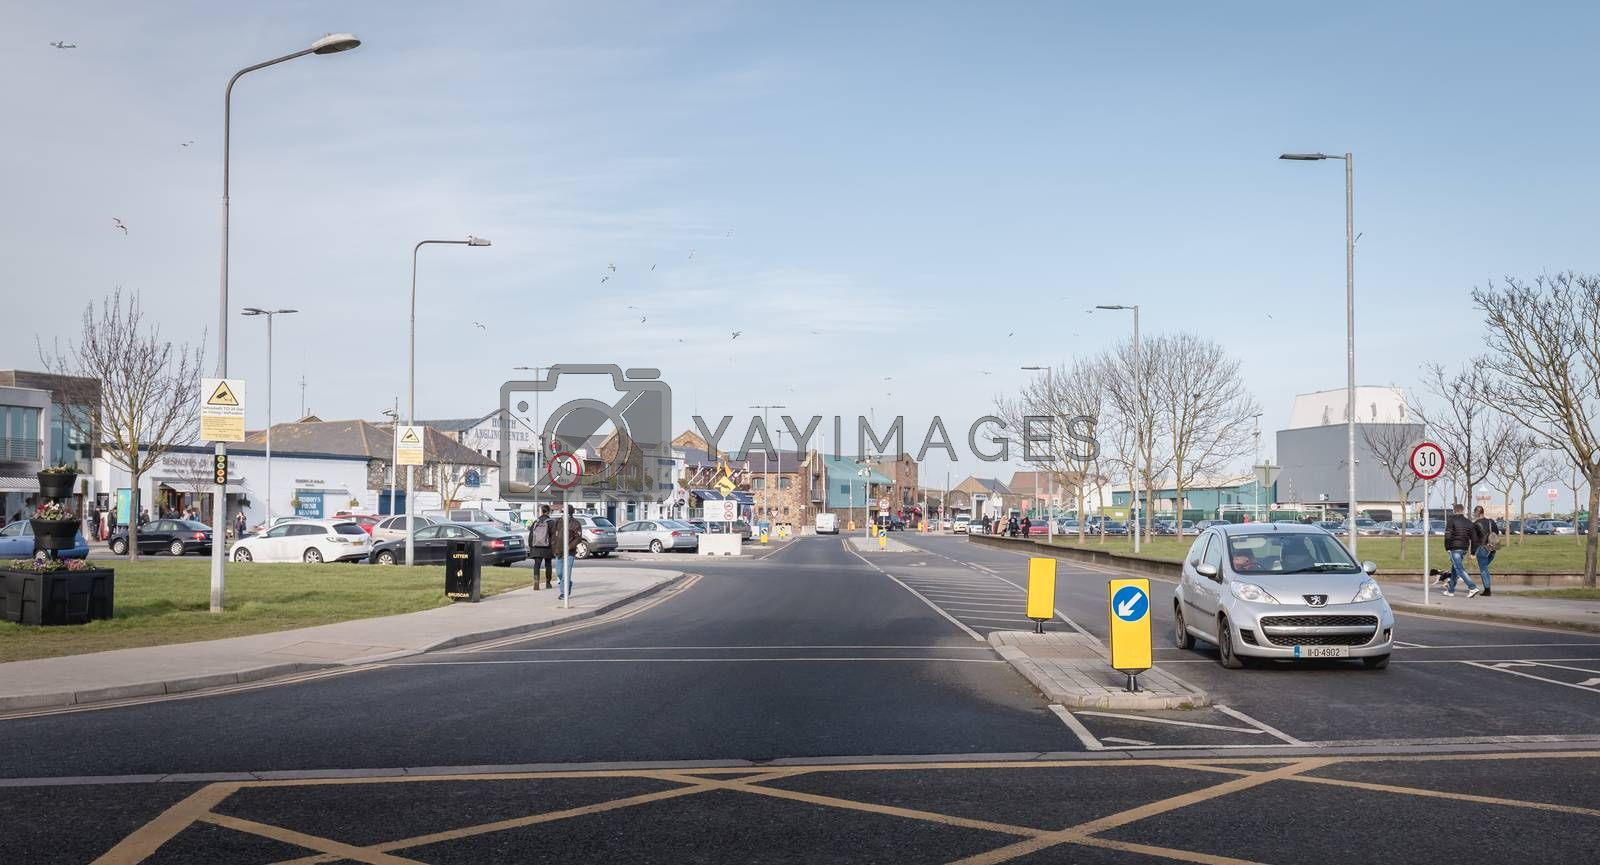 Howth, Ireland - February 15, 2019: people walking in the typical city center of a small fishing port near Dublin on a winter day